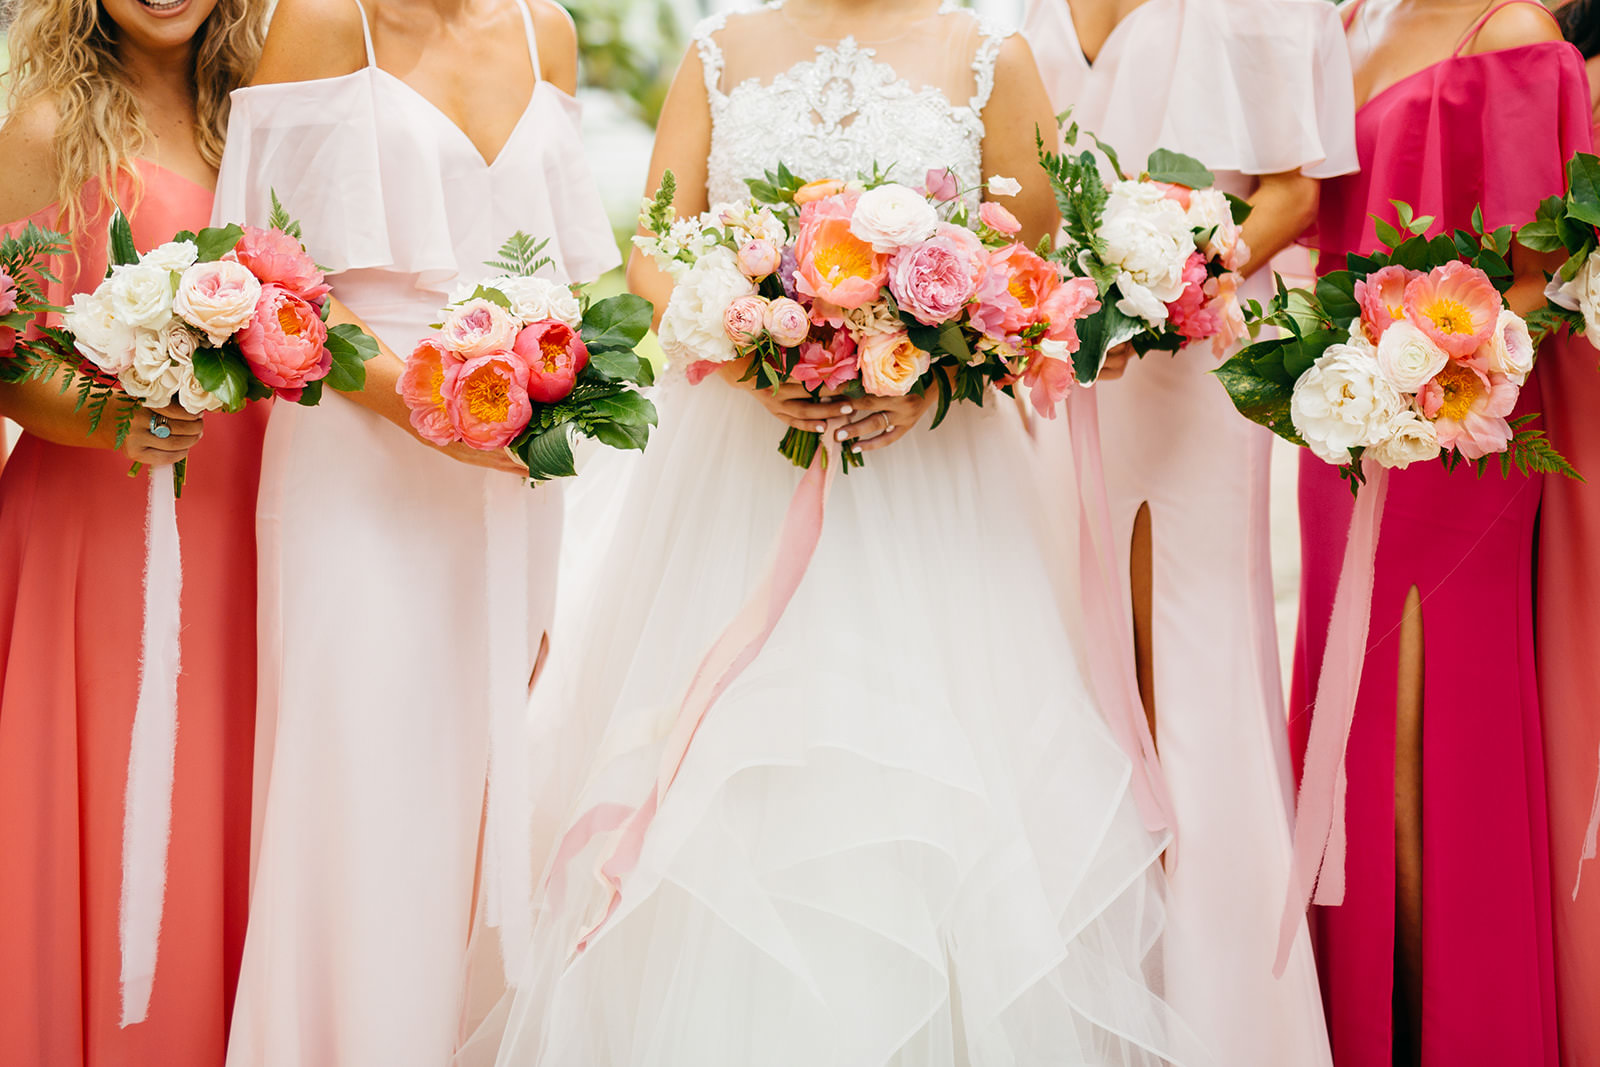 Tropical Vibrant Bride and Bridesmaids in Pink and Coral Dresses Holding Colorful Pink and White Roses Floral Bouquets